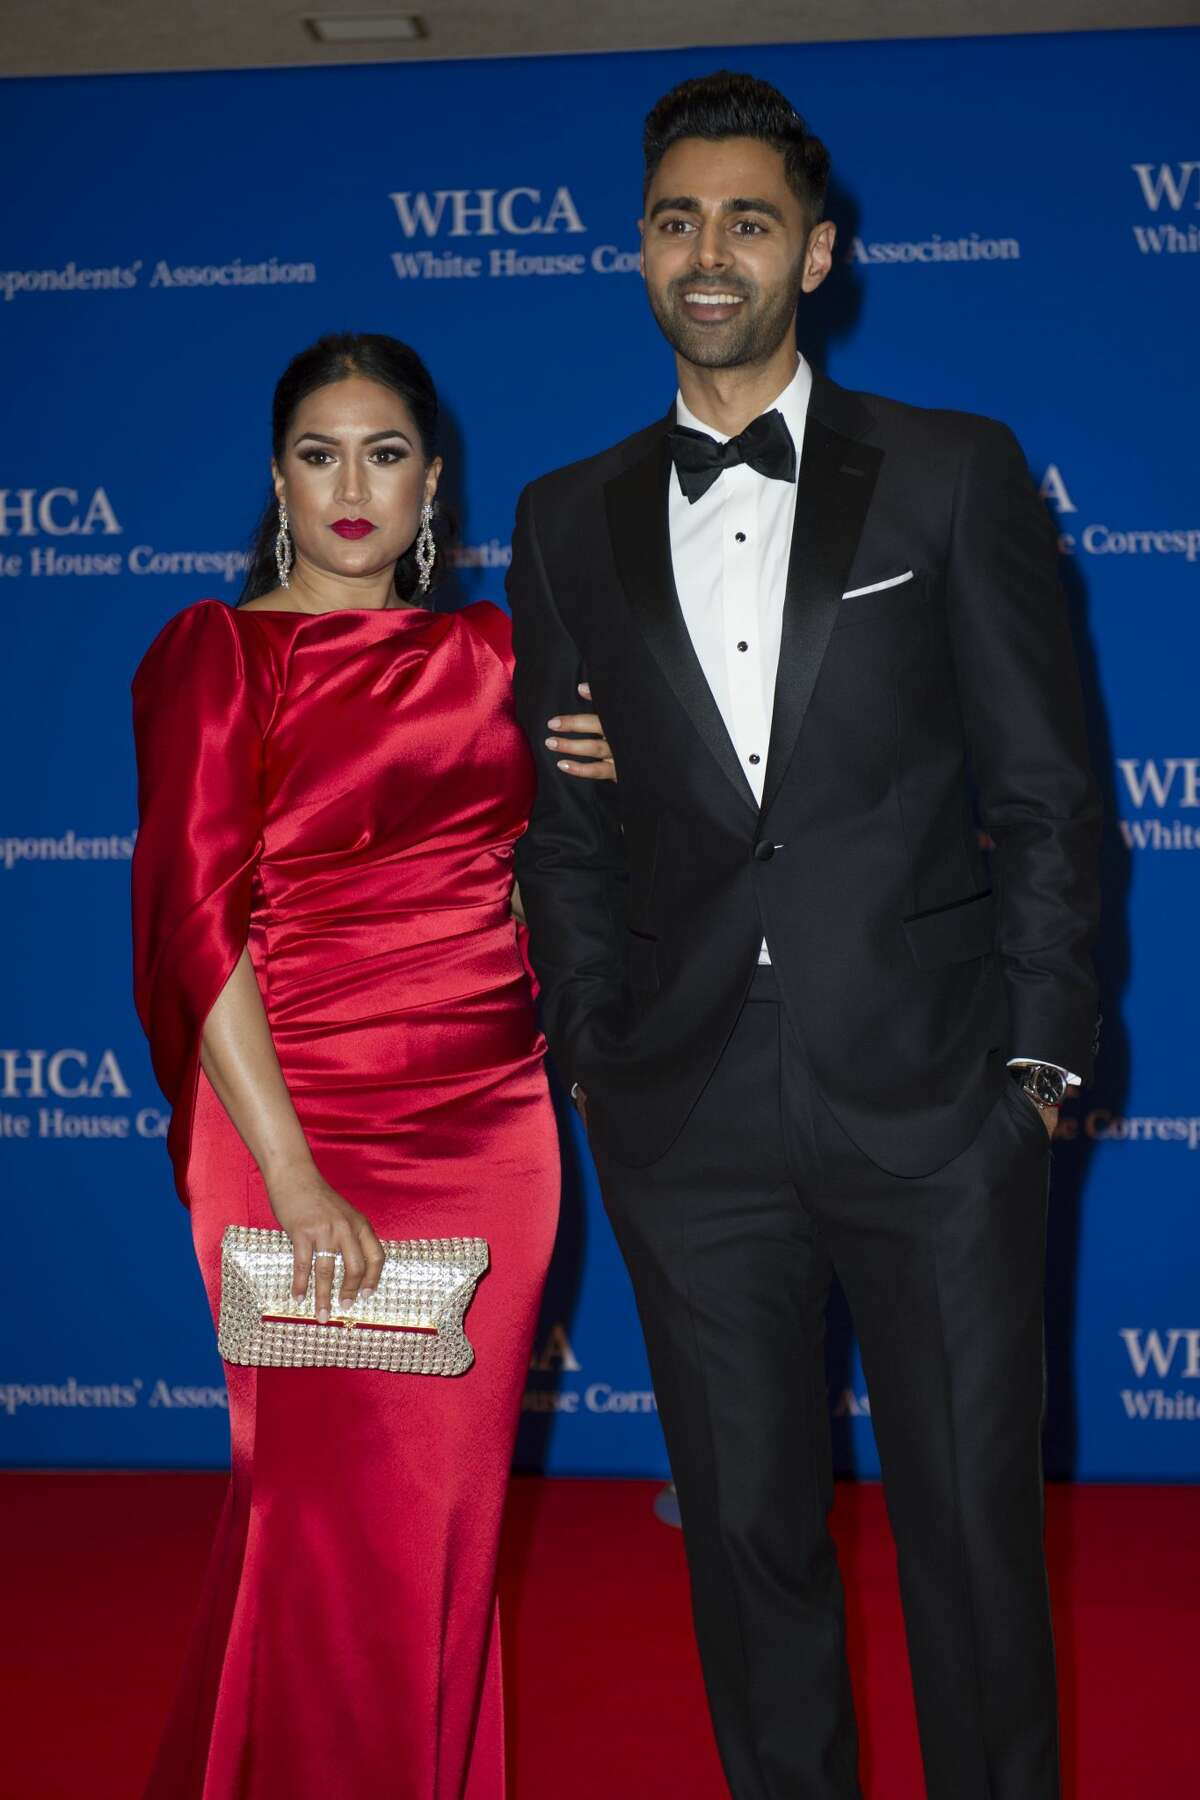 The Daily Show correspondent Hasan Minhaj and his wife Beena pose for a photograph as they arrive to attend the White House Correspondents' Dinner in Washington, Saturday, April 29, 2017. (AP Photo/Cliff Owen)